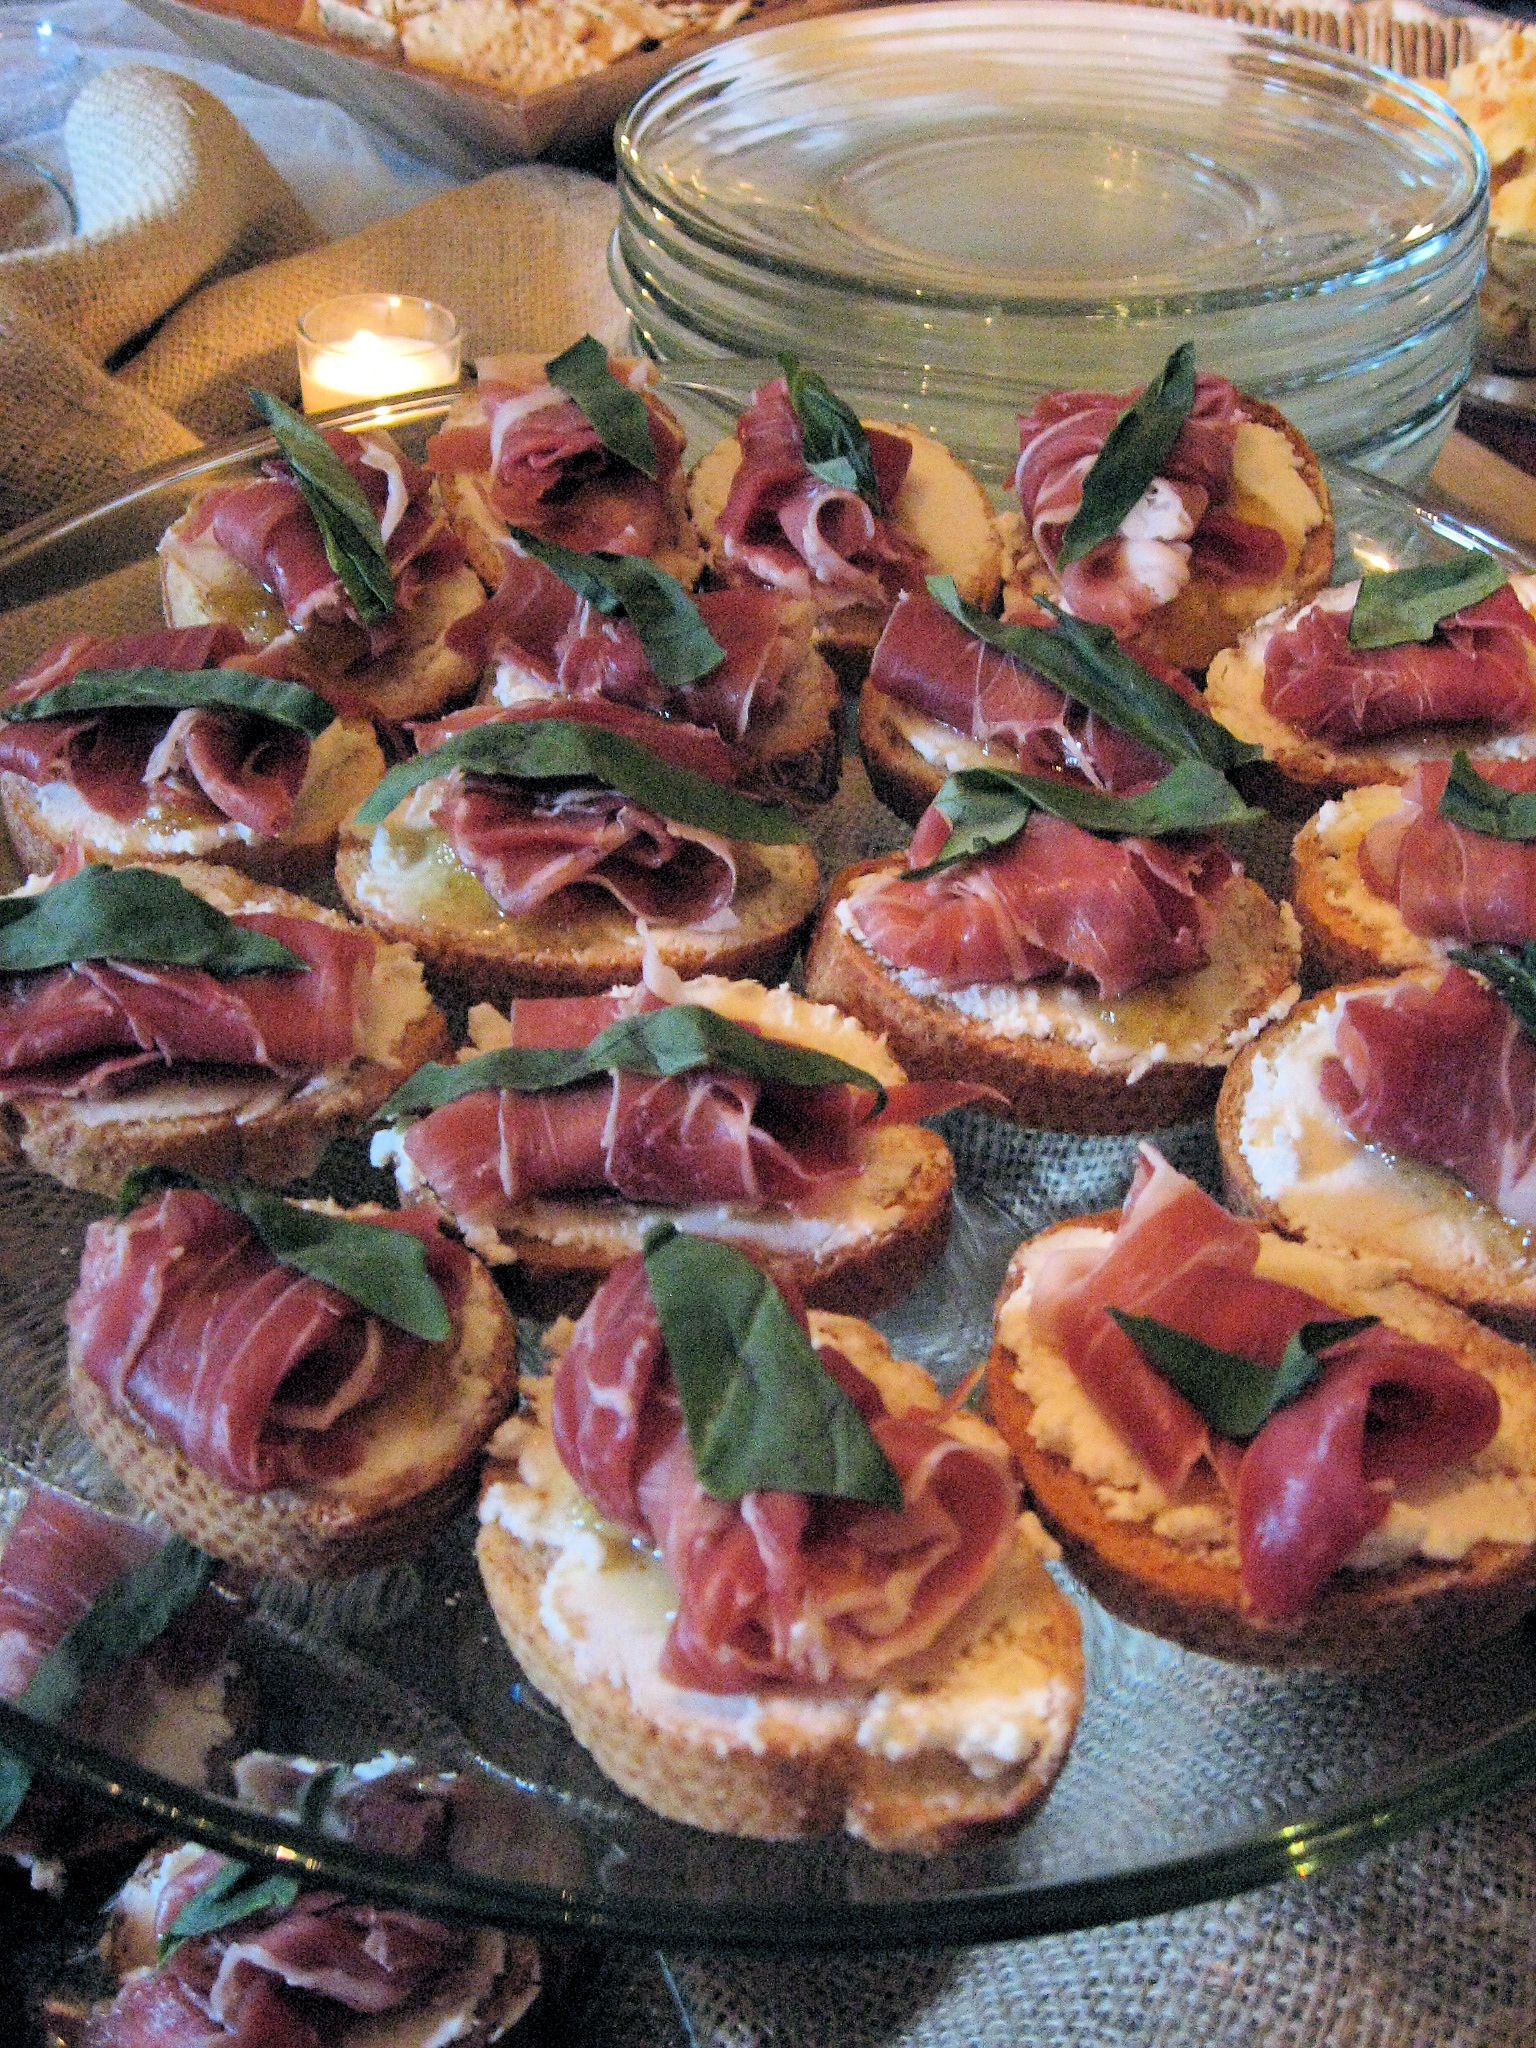 Prosciutto, Fig, and Goat Cheese Crostinis, topped with a fresh basil leaf